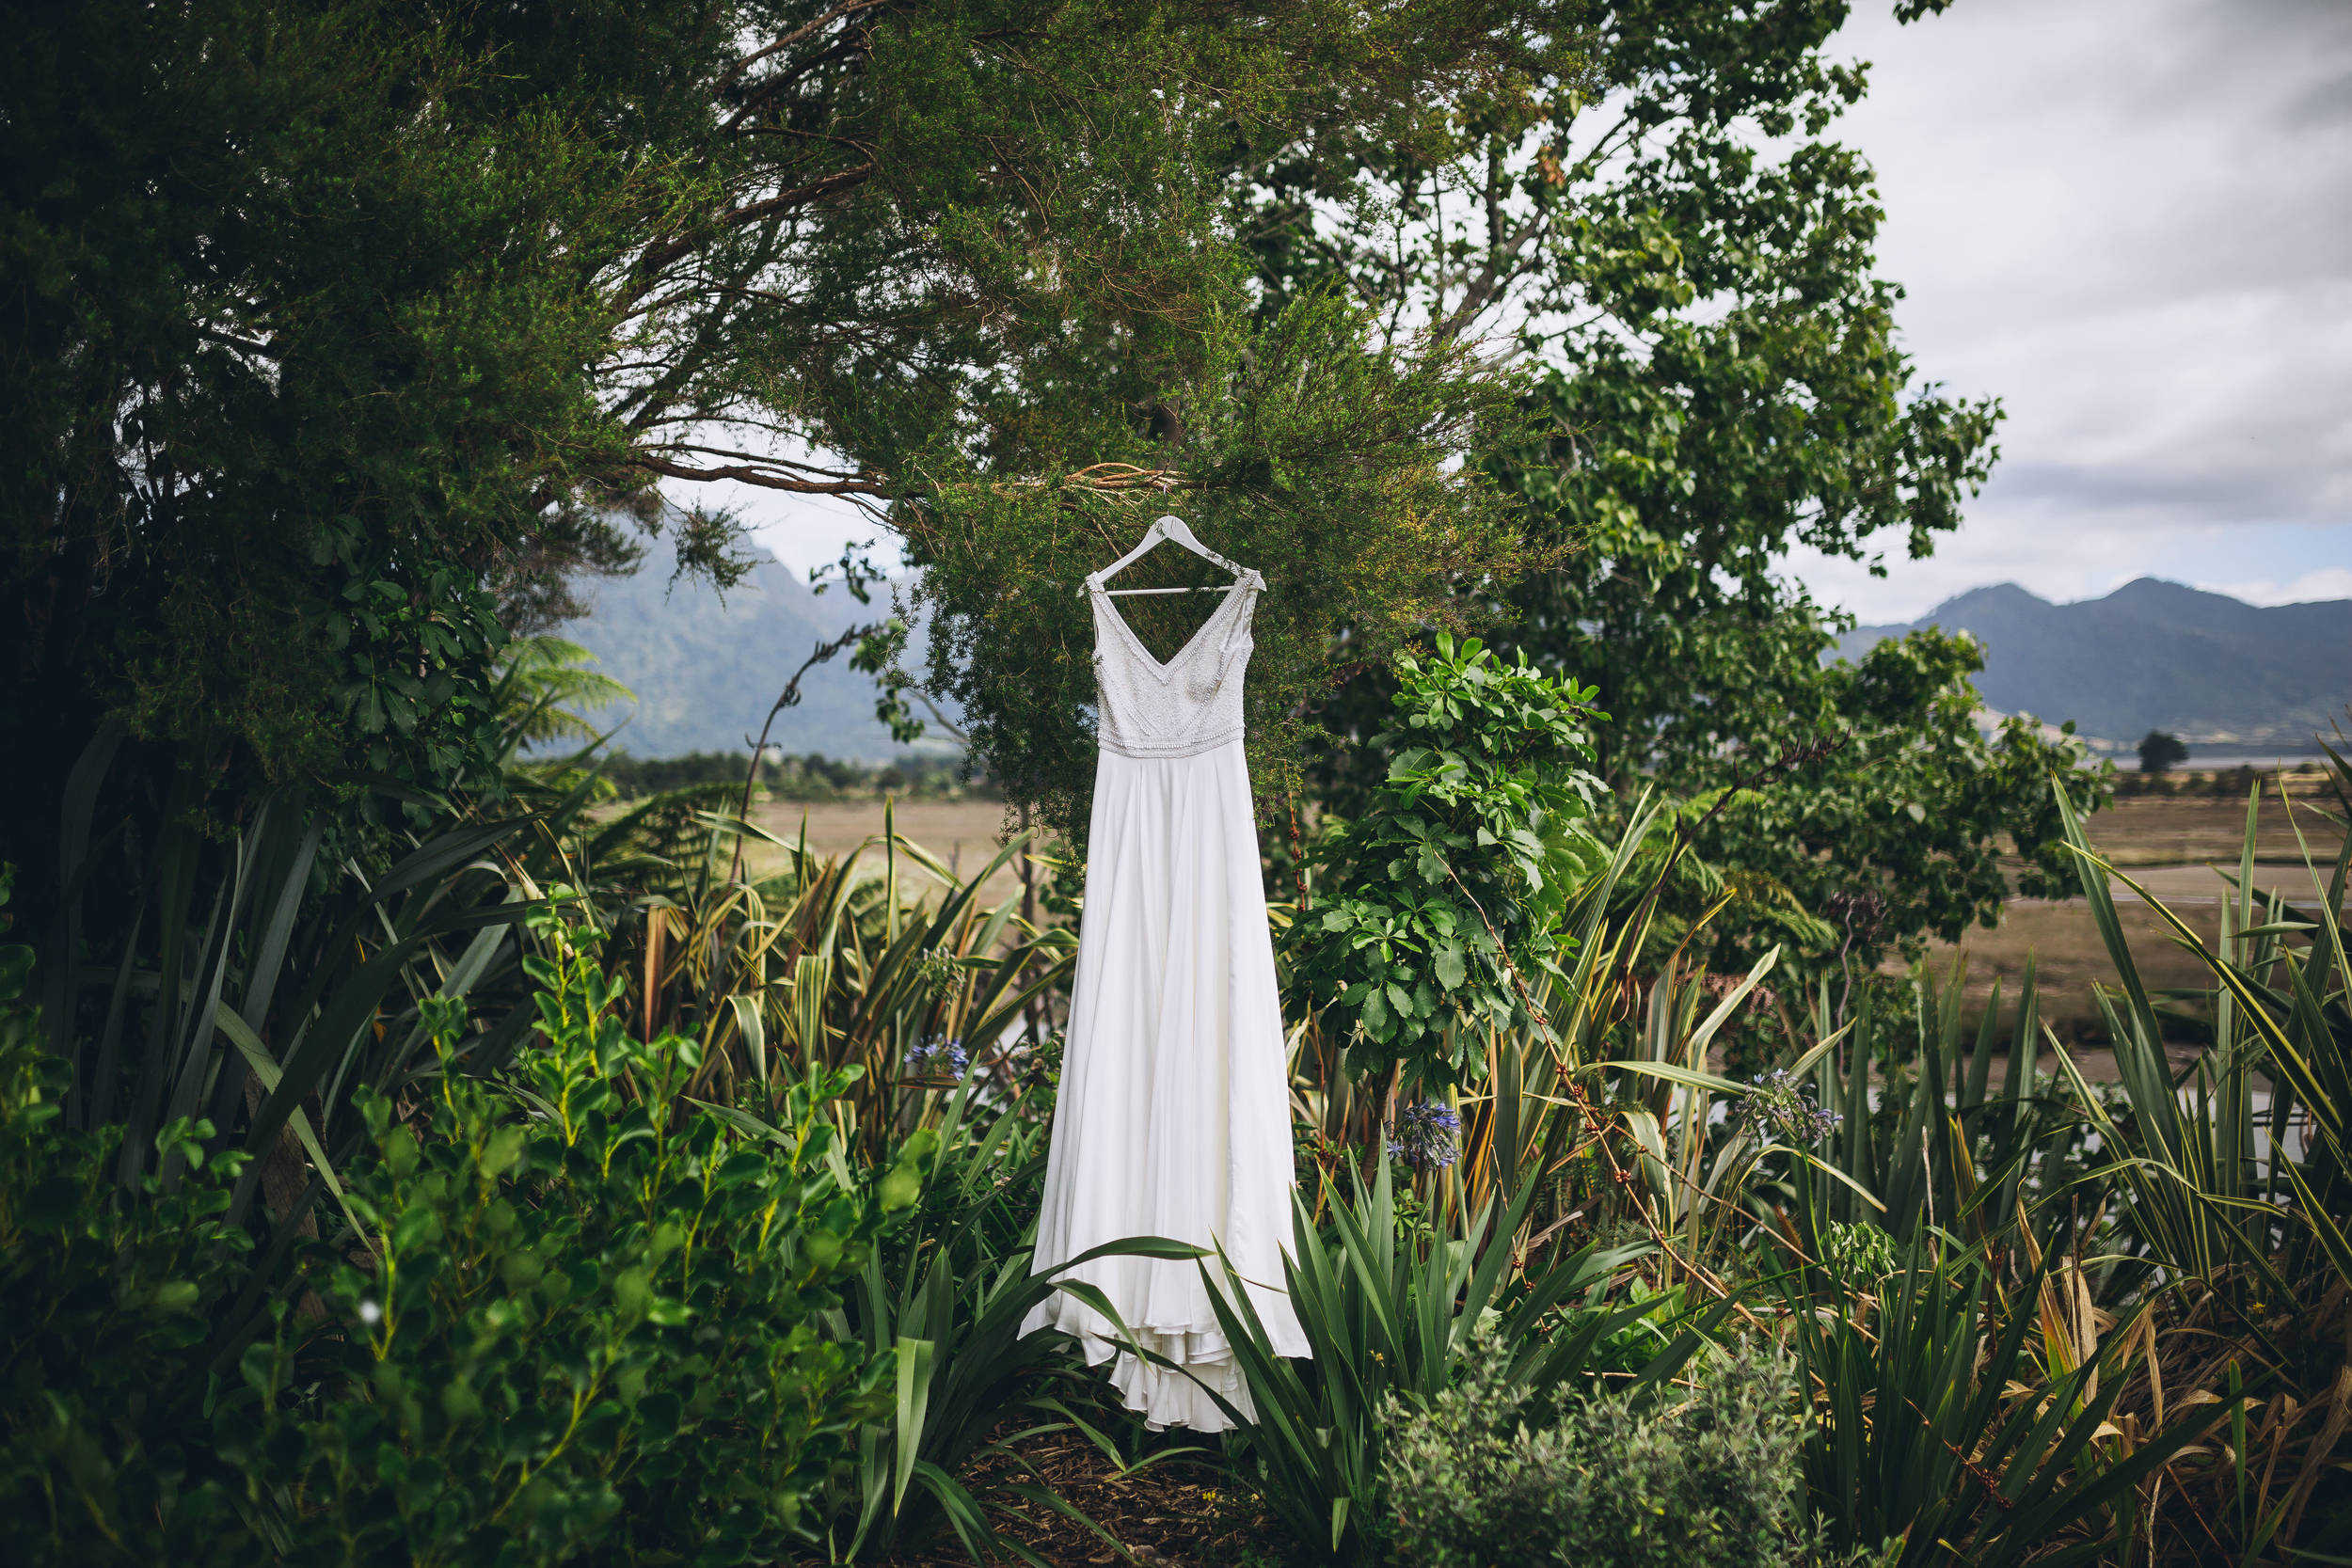 Zatori Wedding Venue Collingwood - Nelson Wedding Photography - Nelson Wedding Photographers - The Woods Photography